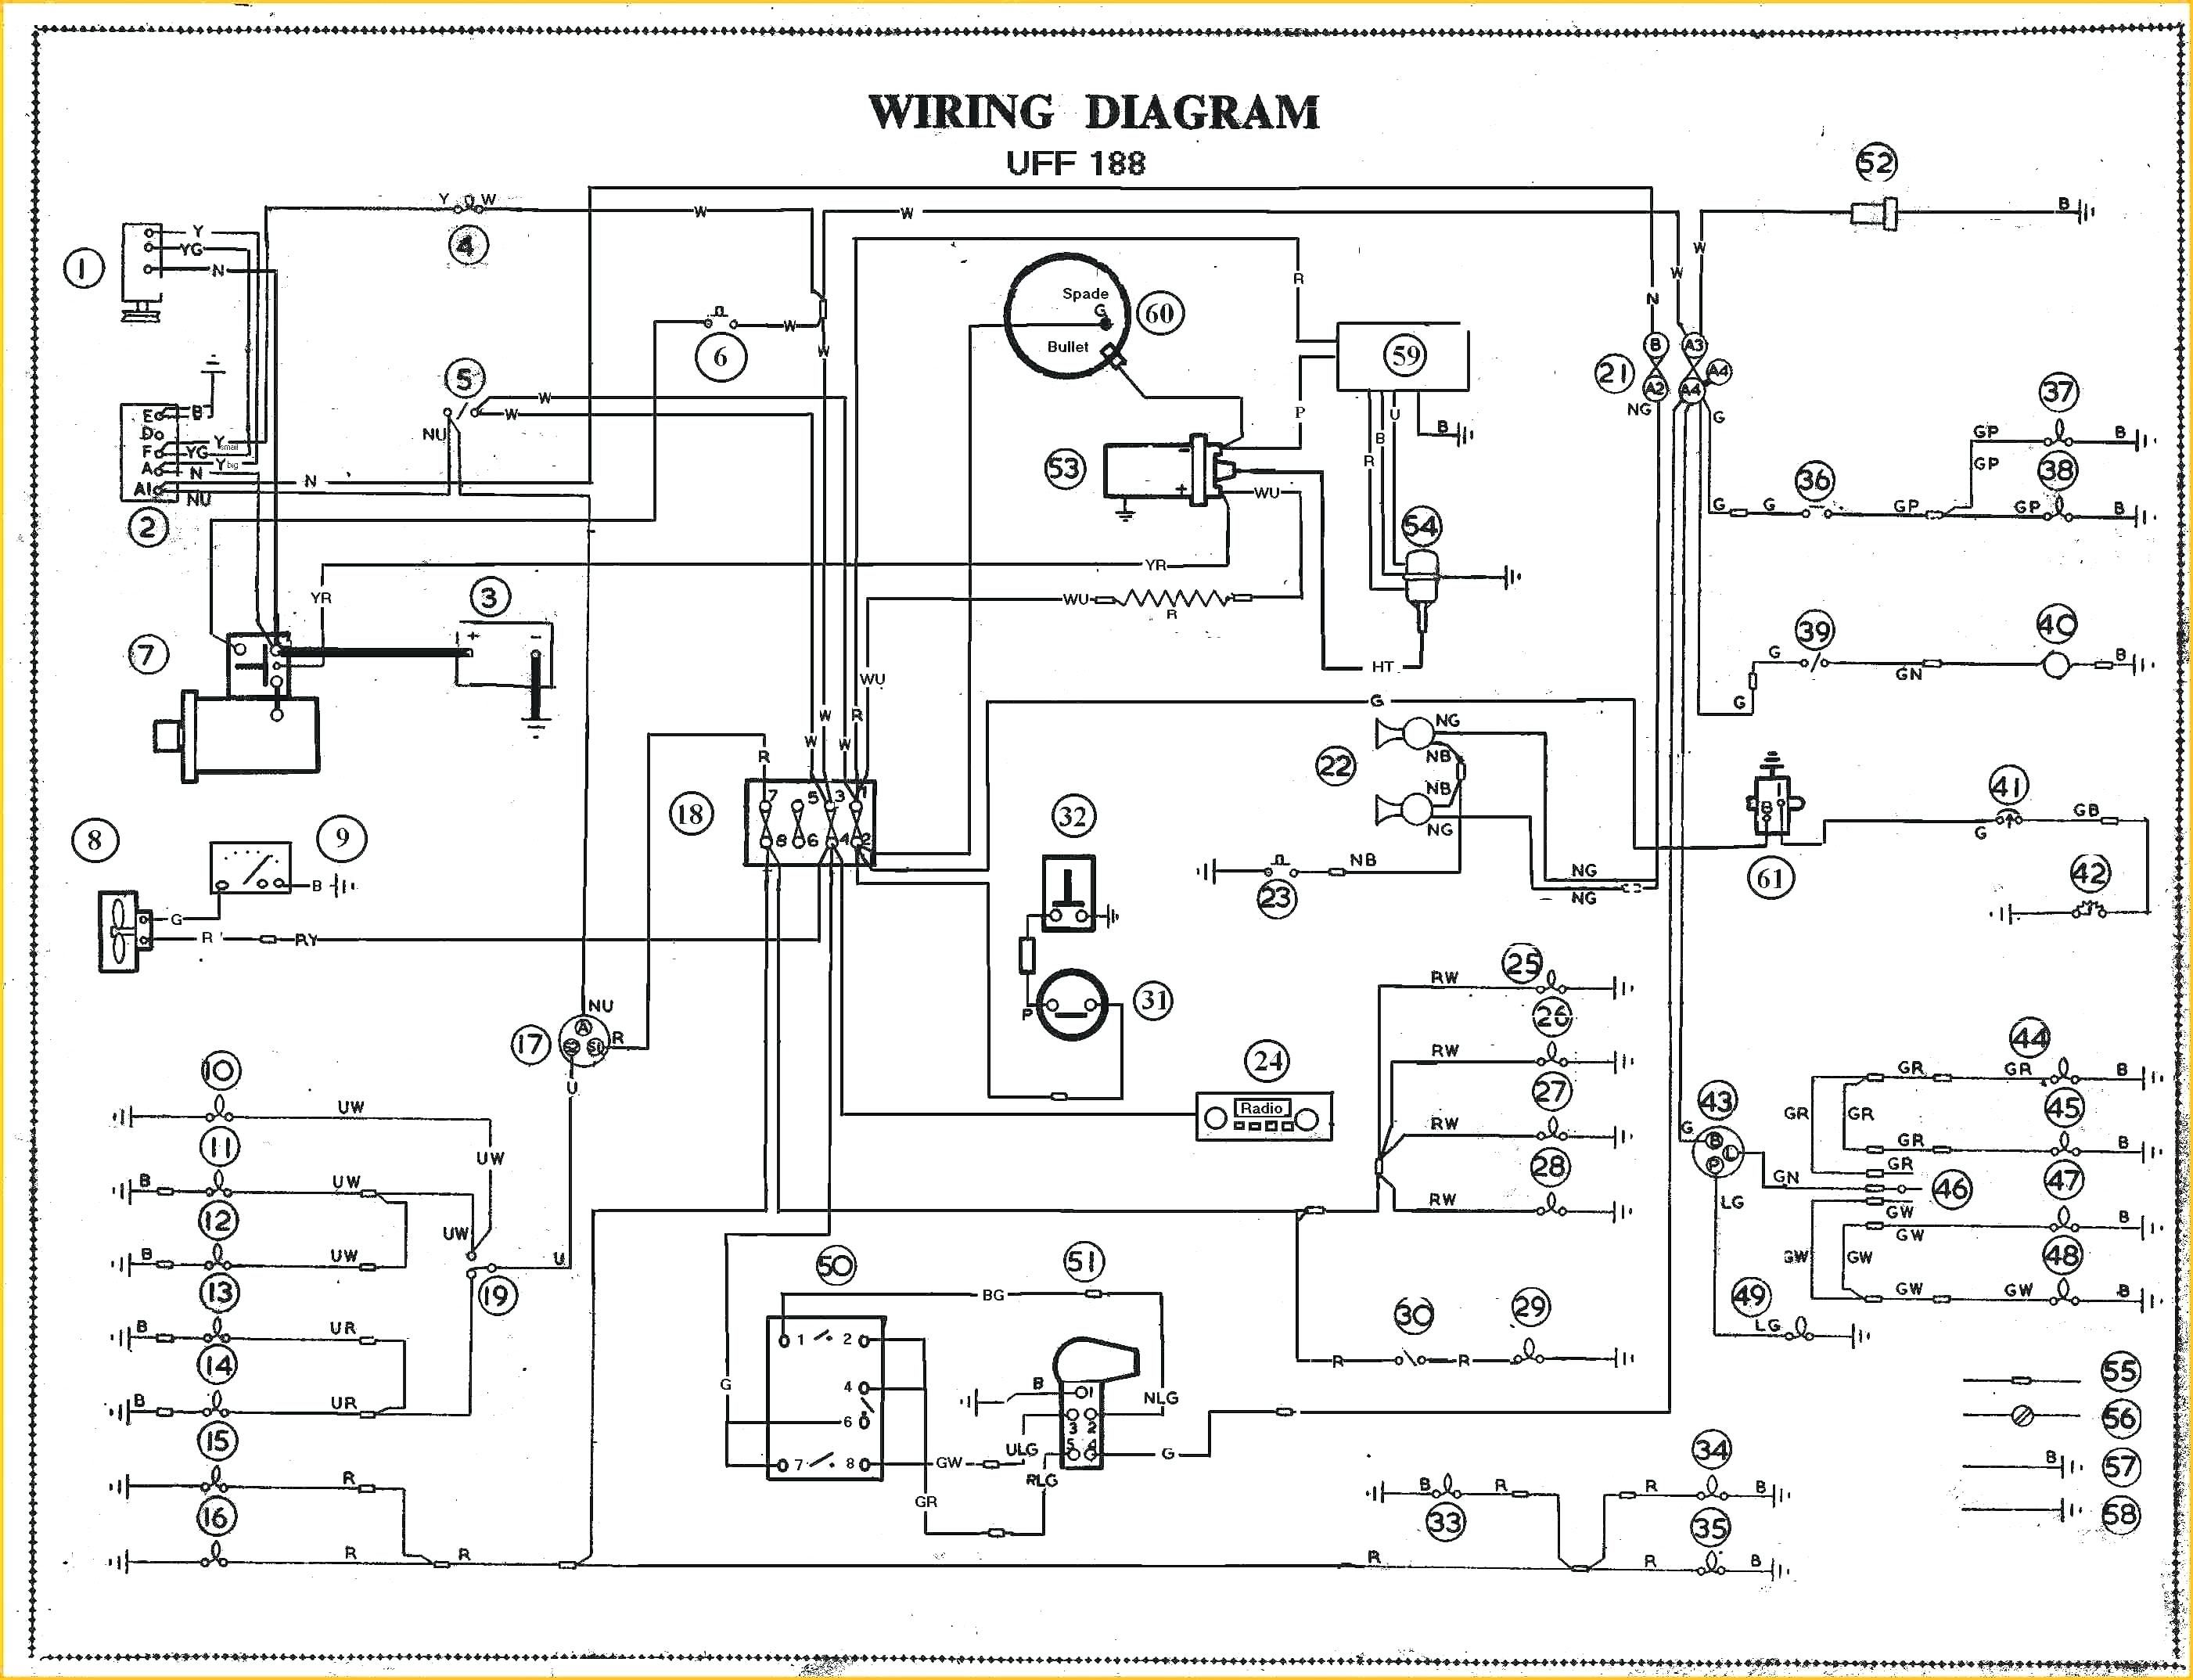 Air Conditioner Wiring Diagram Pdf For Your Needs